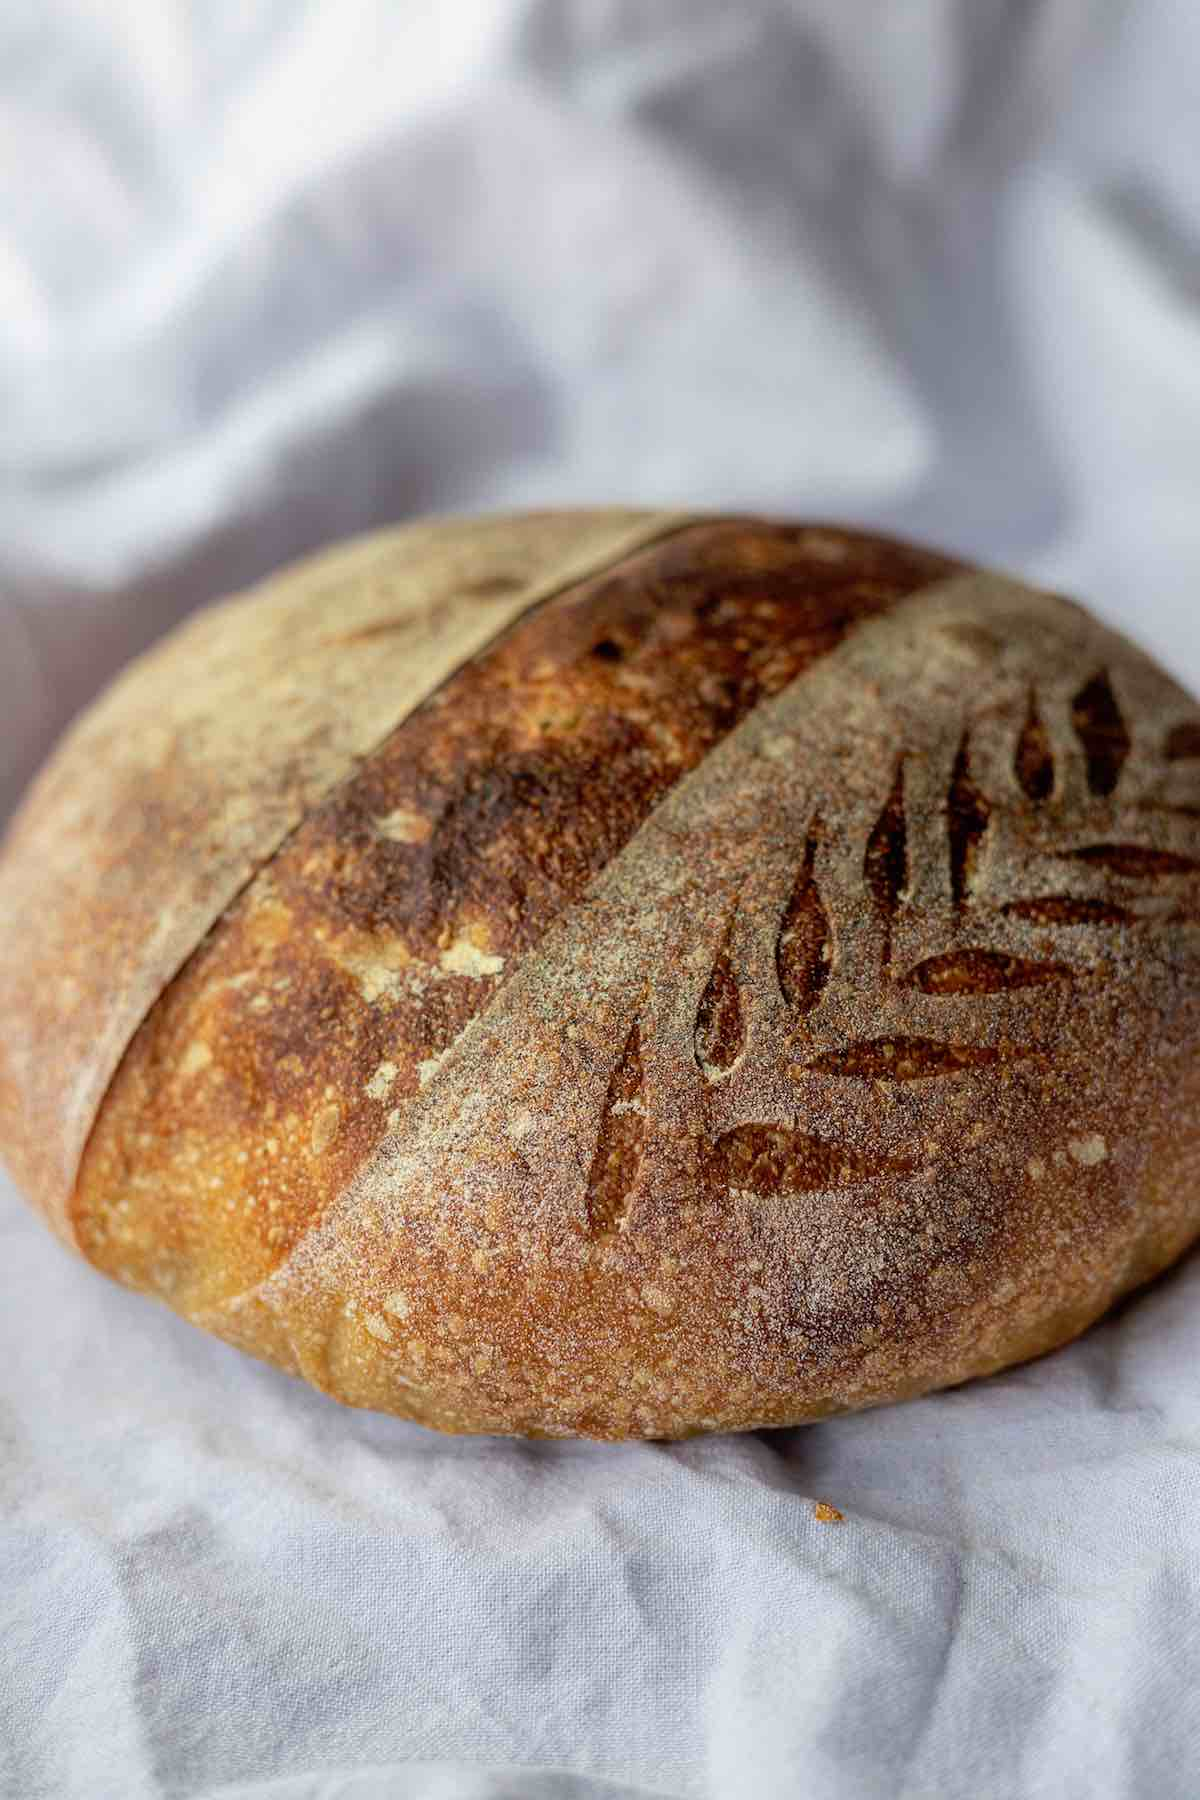 Scoring Sourdough with a Bread Lame from Mure et Peyrot